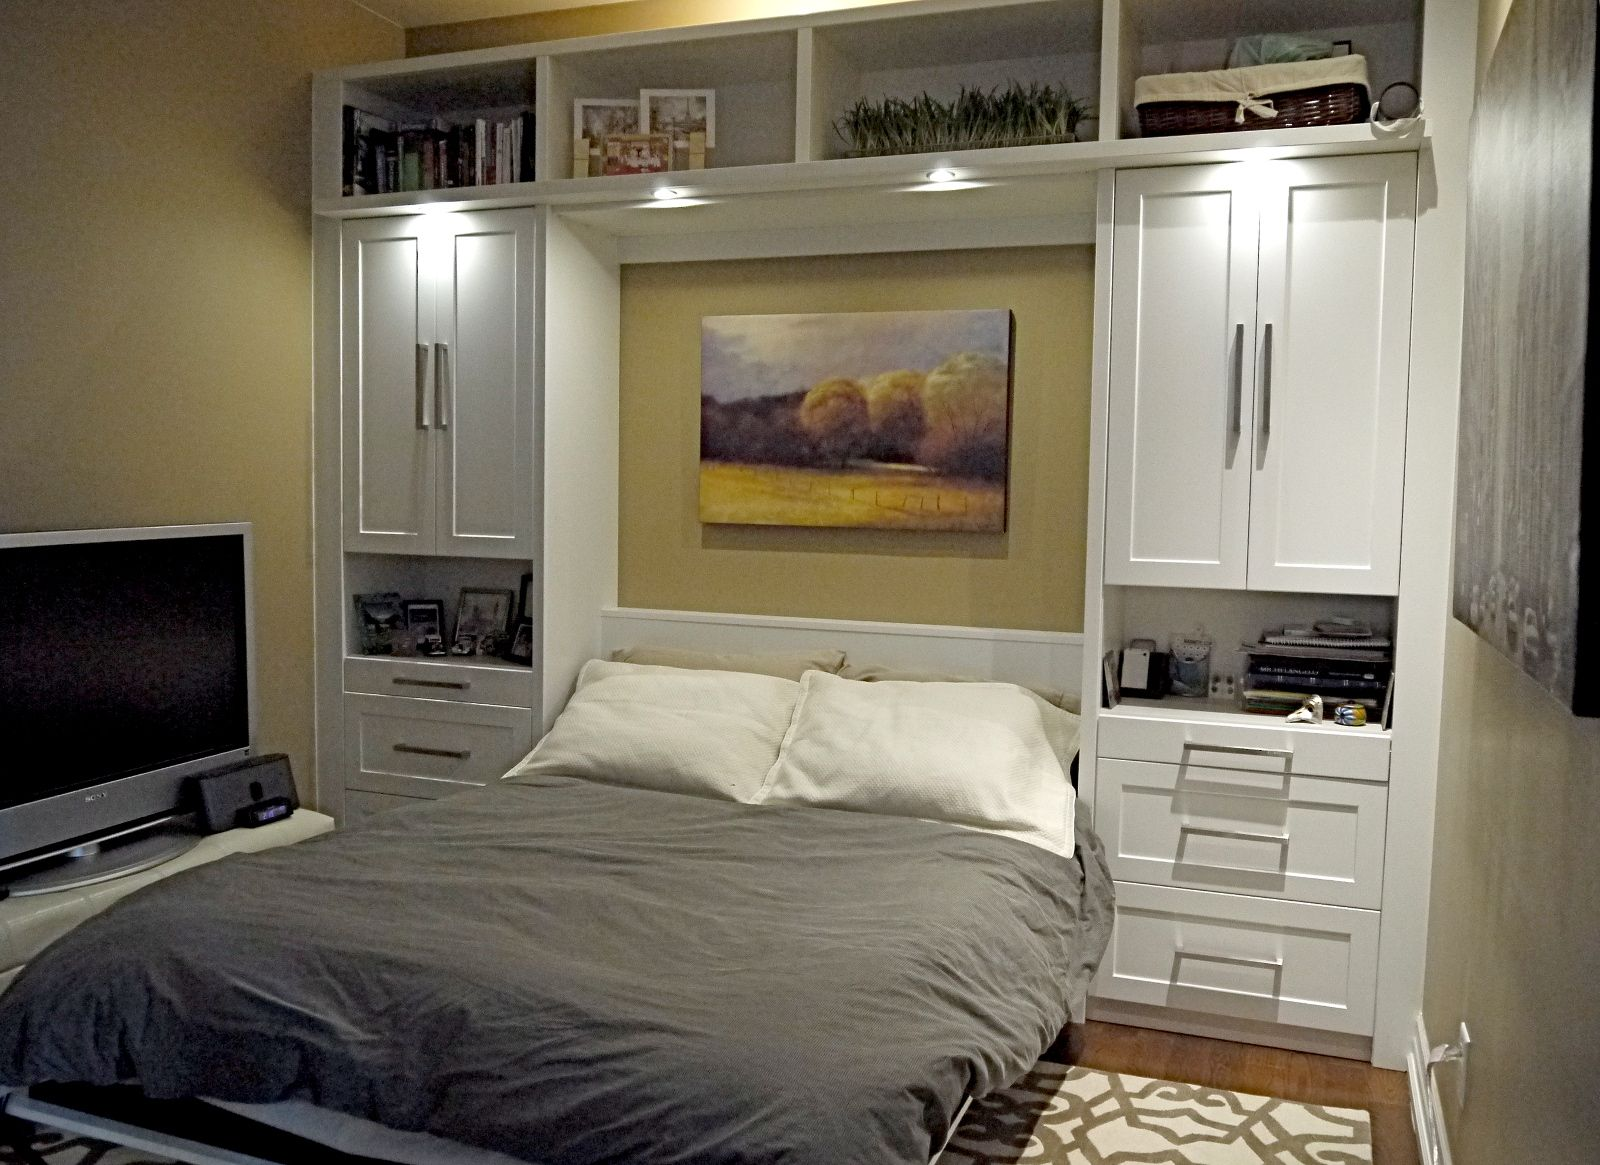 superb white cabinets for tiny home interior space idea feat modern murphy bed with overhead lighting design - Murphy Bed Design Ideas